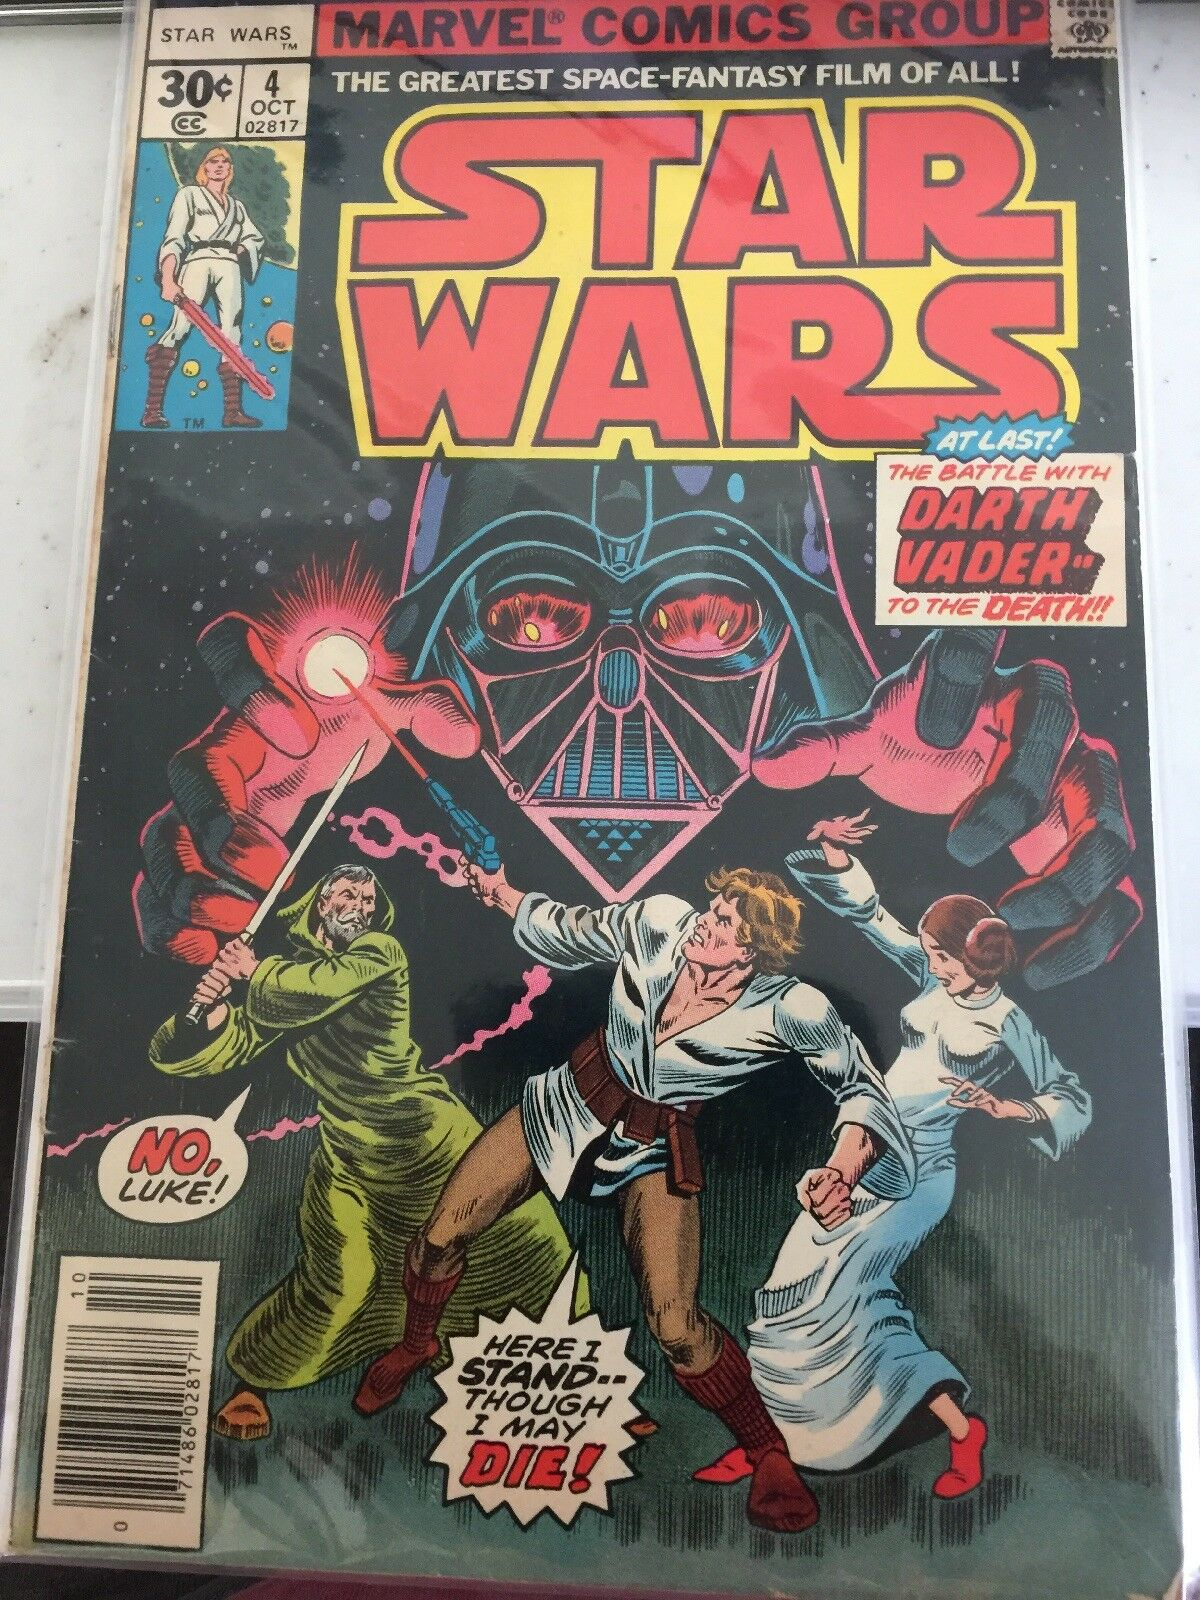 Marvel Comics Group  Star Wars The Battle with Darth Darth Darth Vader to the death 6aed39